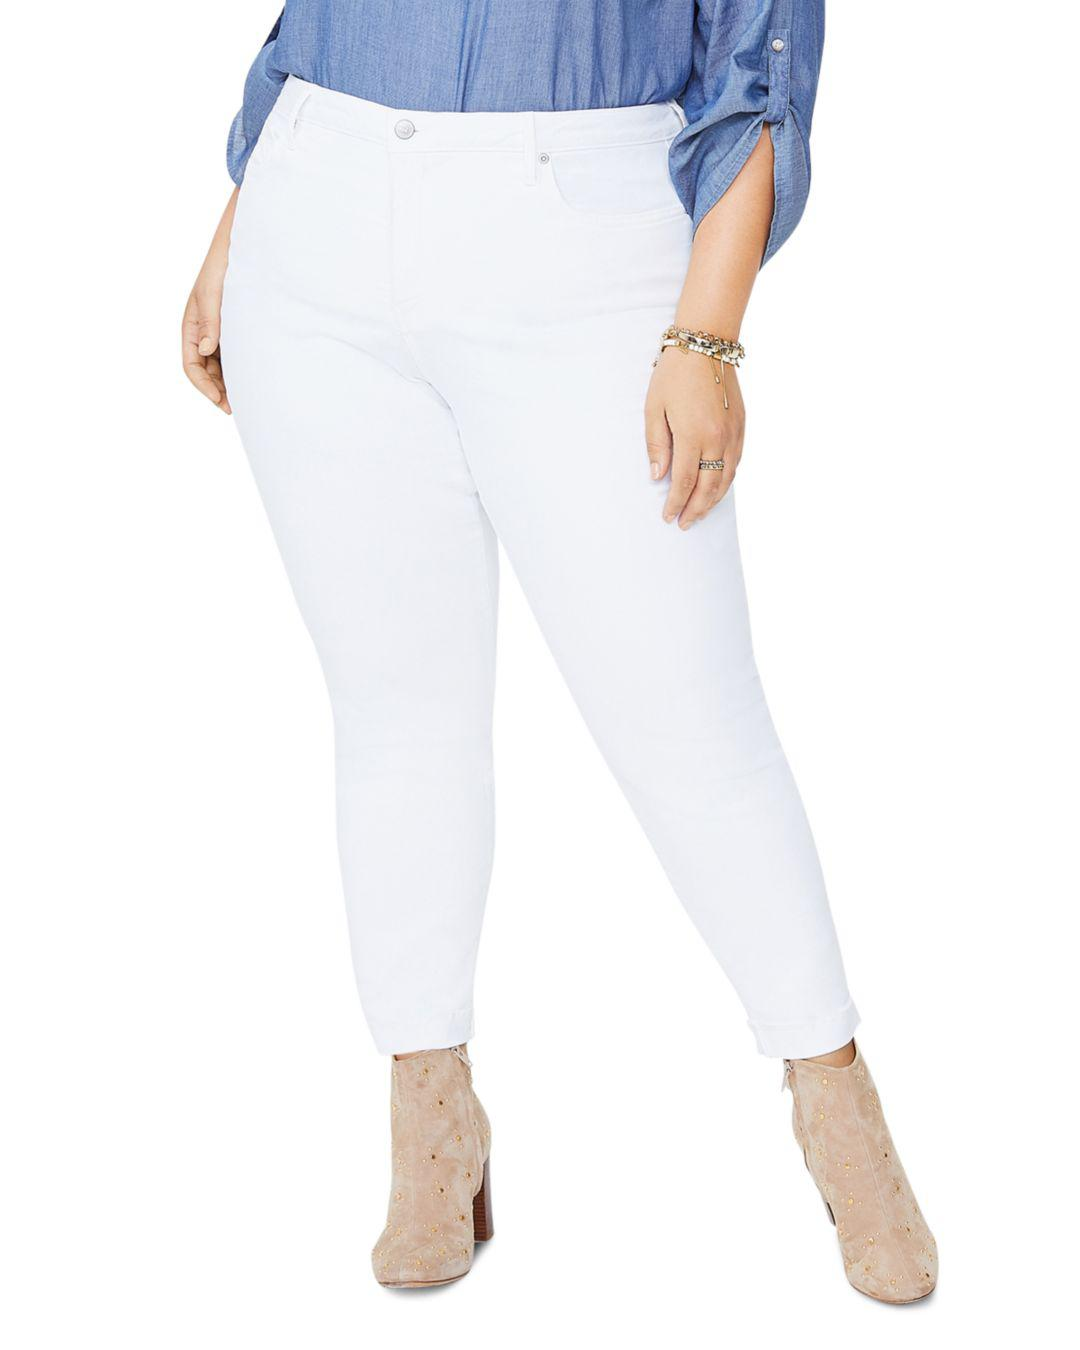 5a505a8f6fd31 Lyst - Nydj Ami Ankle Skinny Jeans In Optic White in White